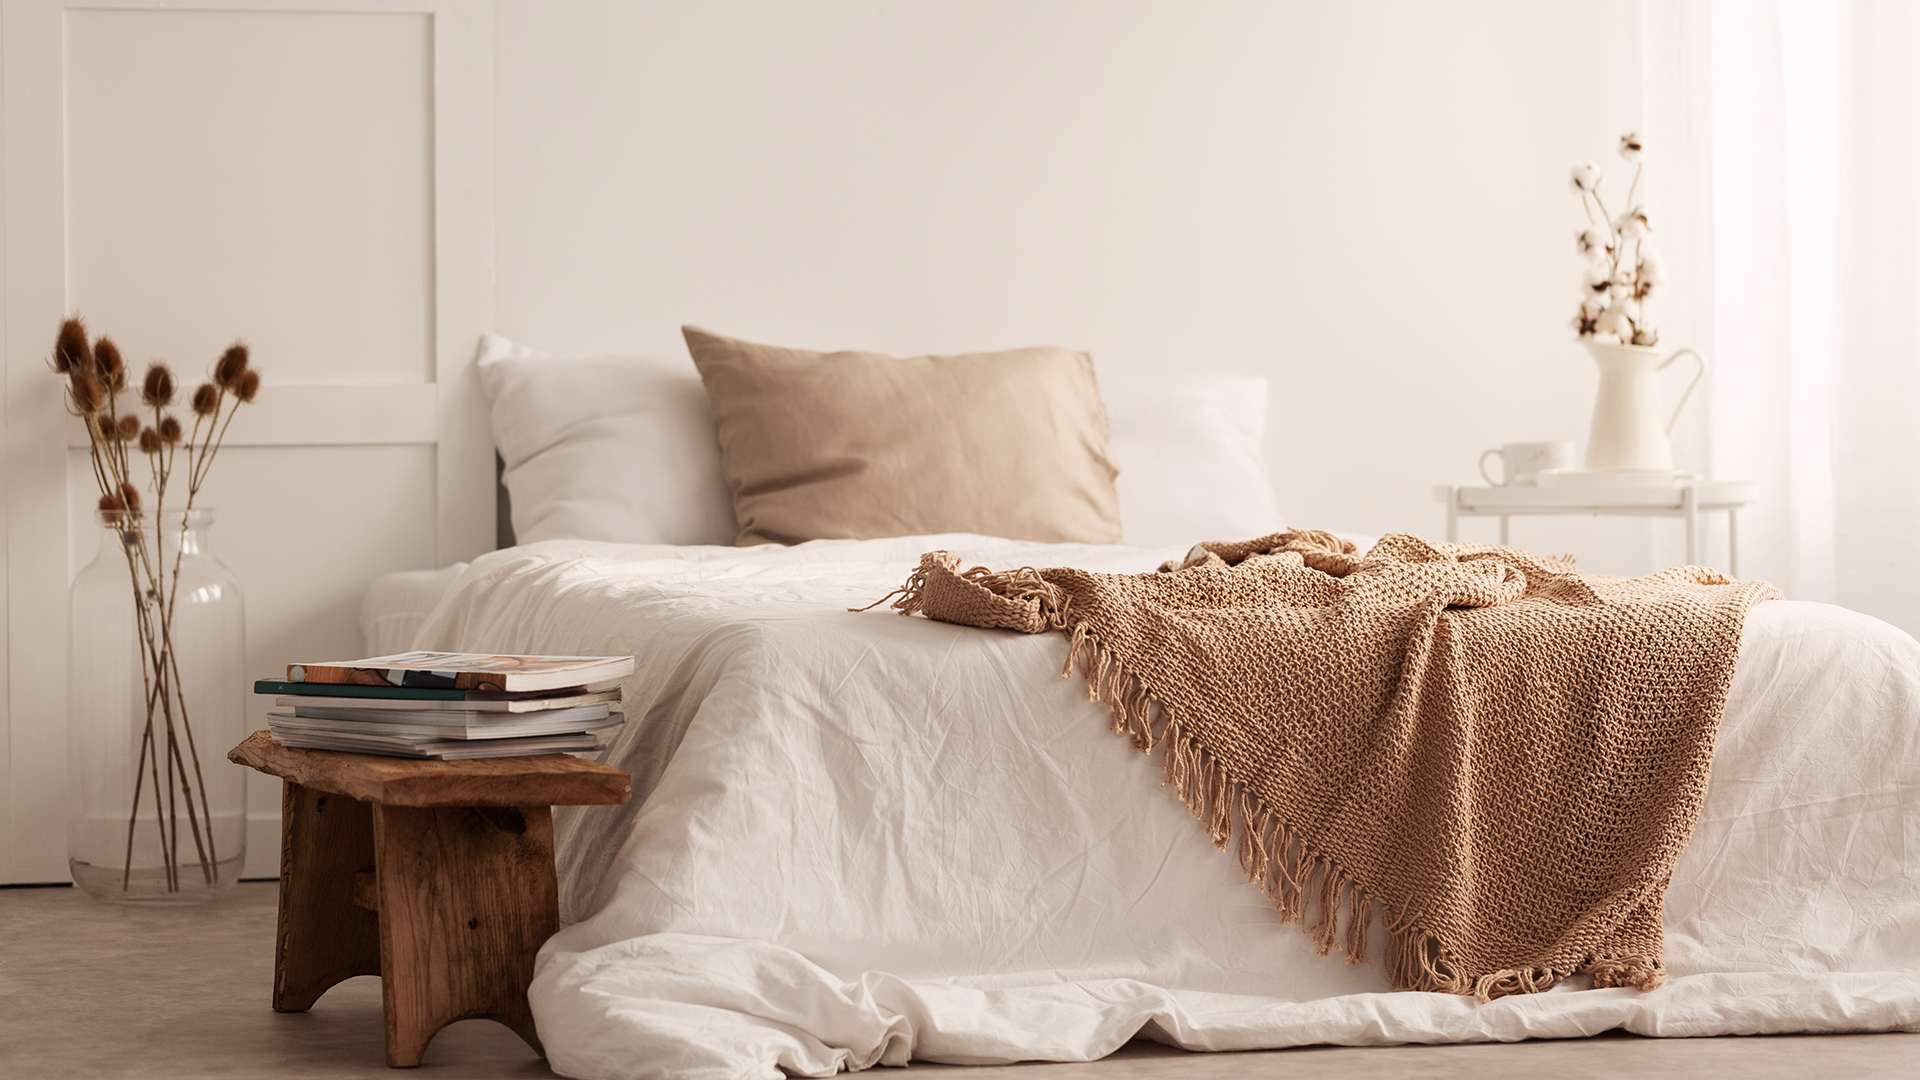 Picture of: Best Bed Sheets From Amazon 2019 According To The Reviews Stylecaster